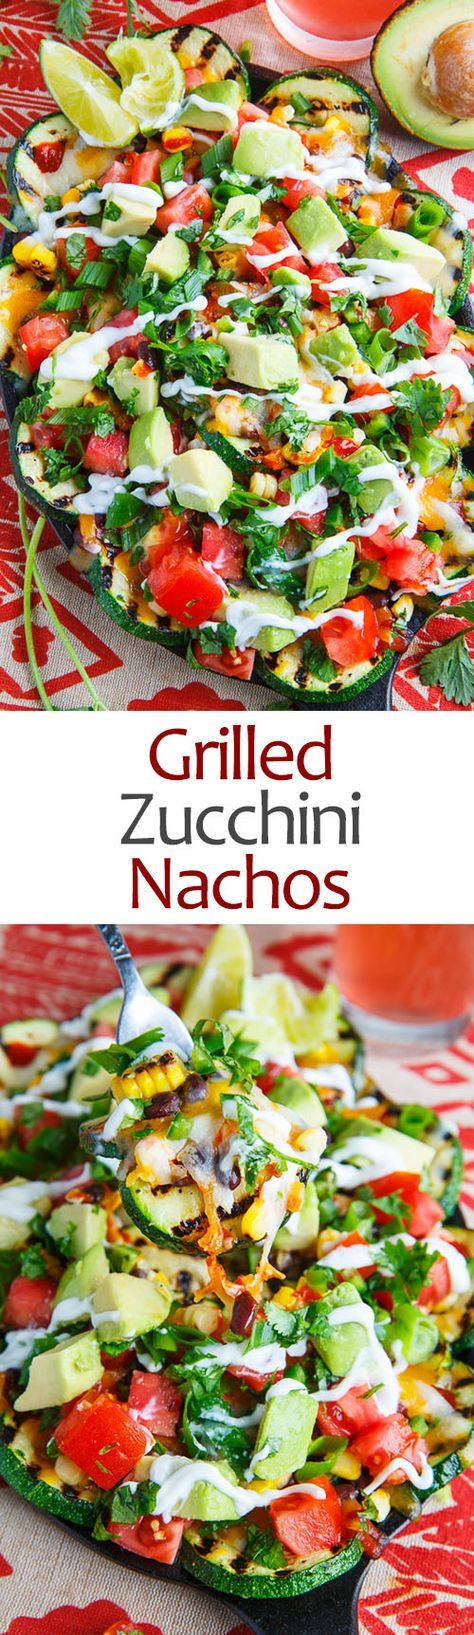 Grilled Zucchini Nachos. Fresh grilled zucchini served nacho style topped with corn, tomatoes, beans, avocado and plenty of melted cheese!